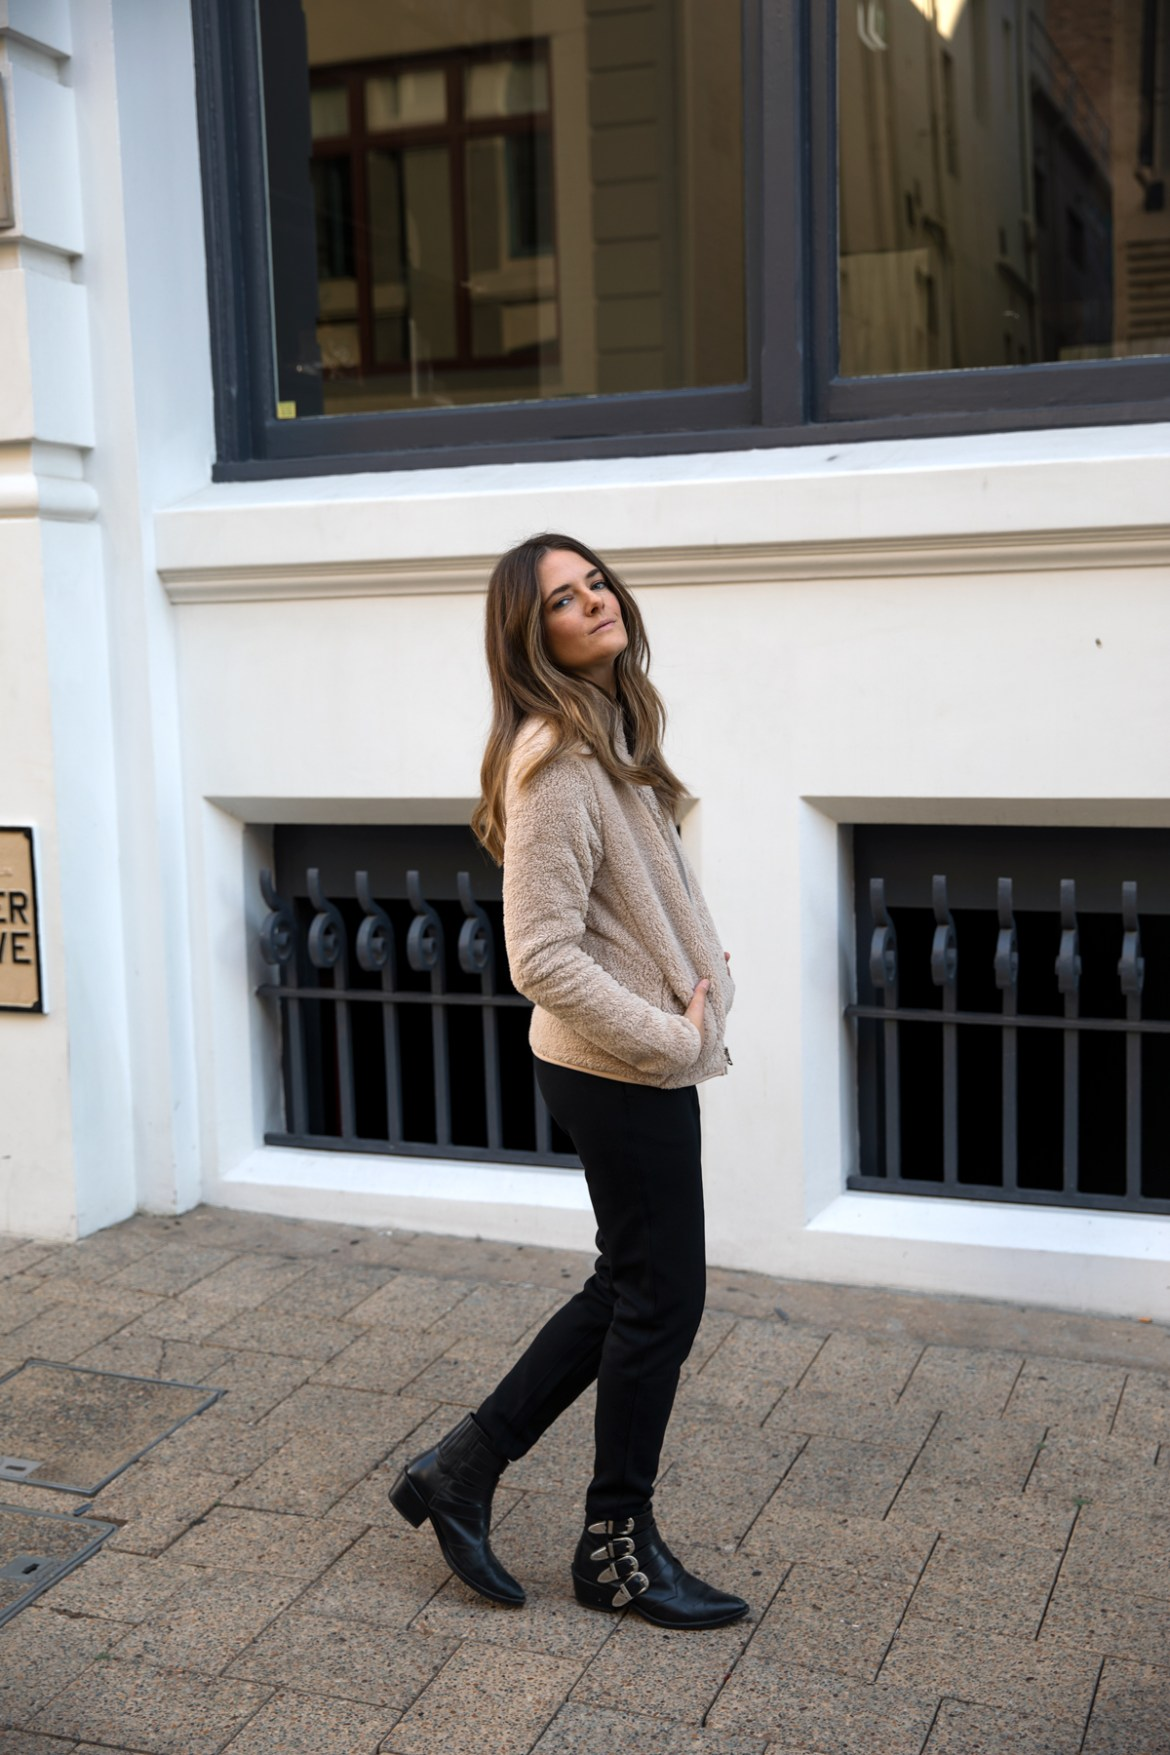 fleece jacket from Uniqlo teddy jacket with track pants for Autumn Winter outfit ideas worn by Inspiring Wit fashion blogger Jenelle Witty